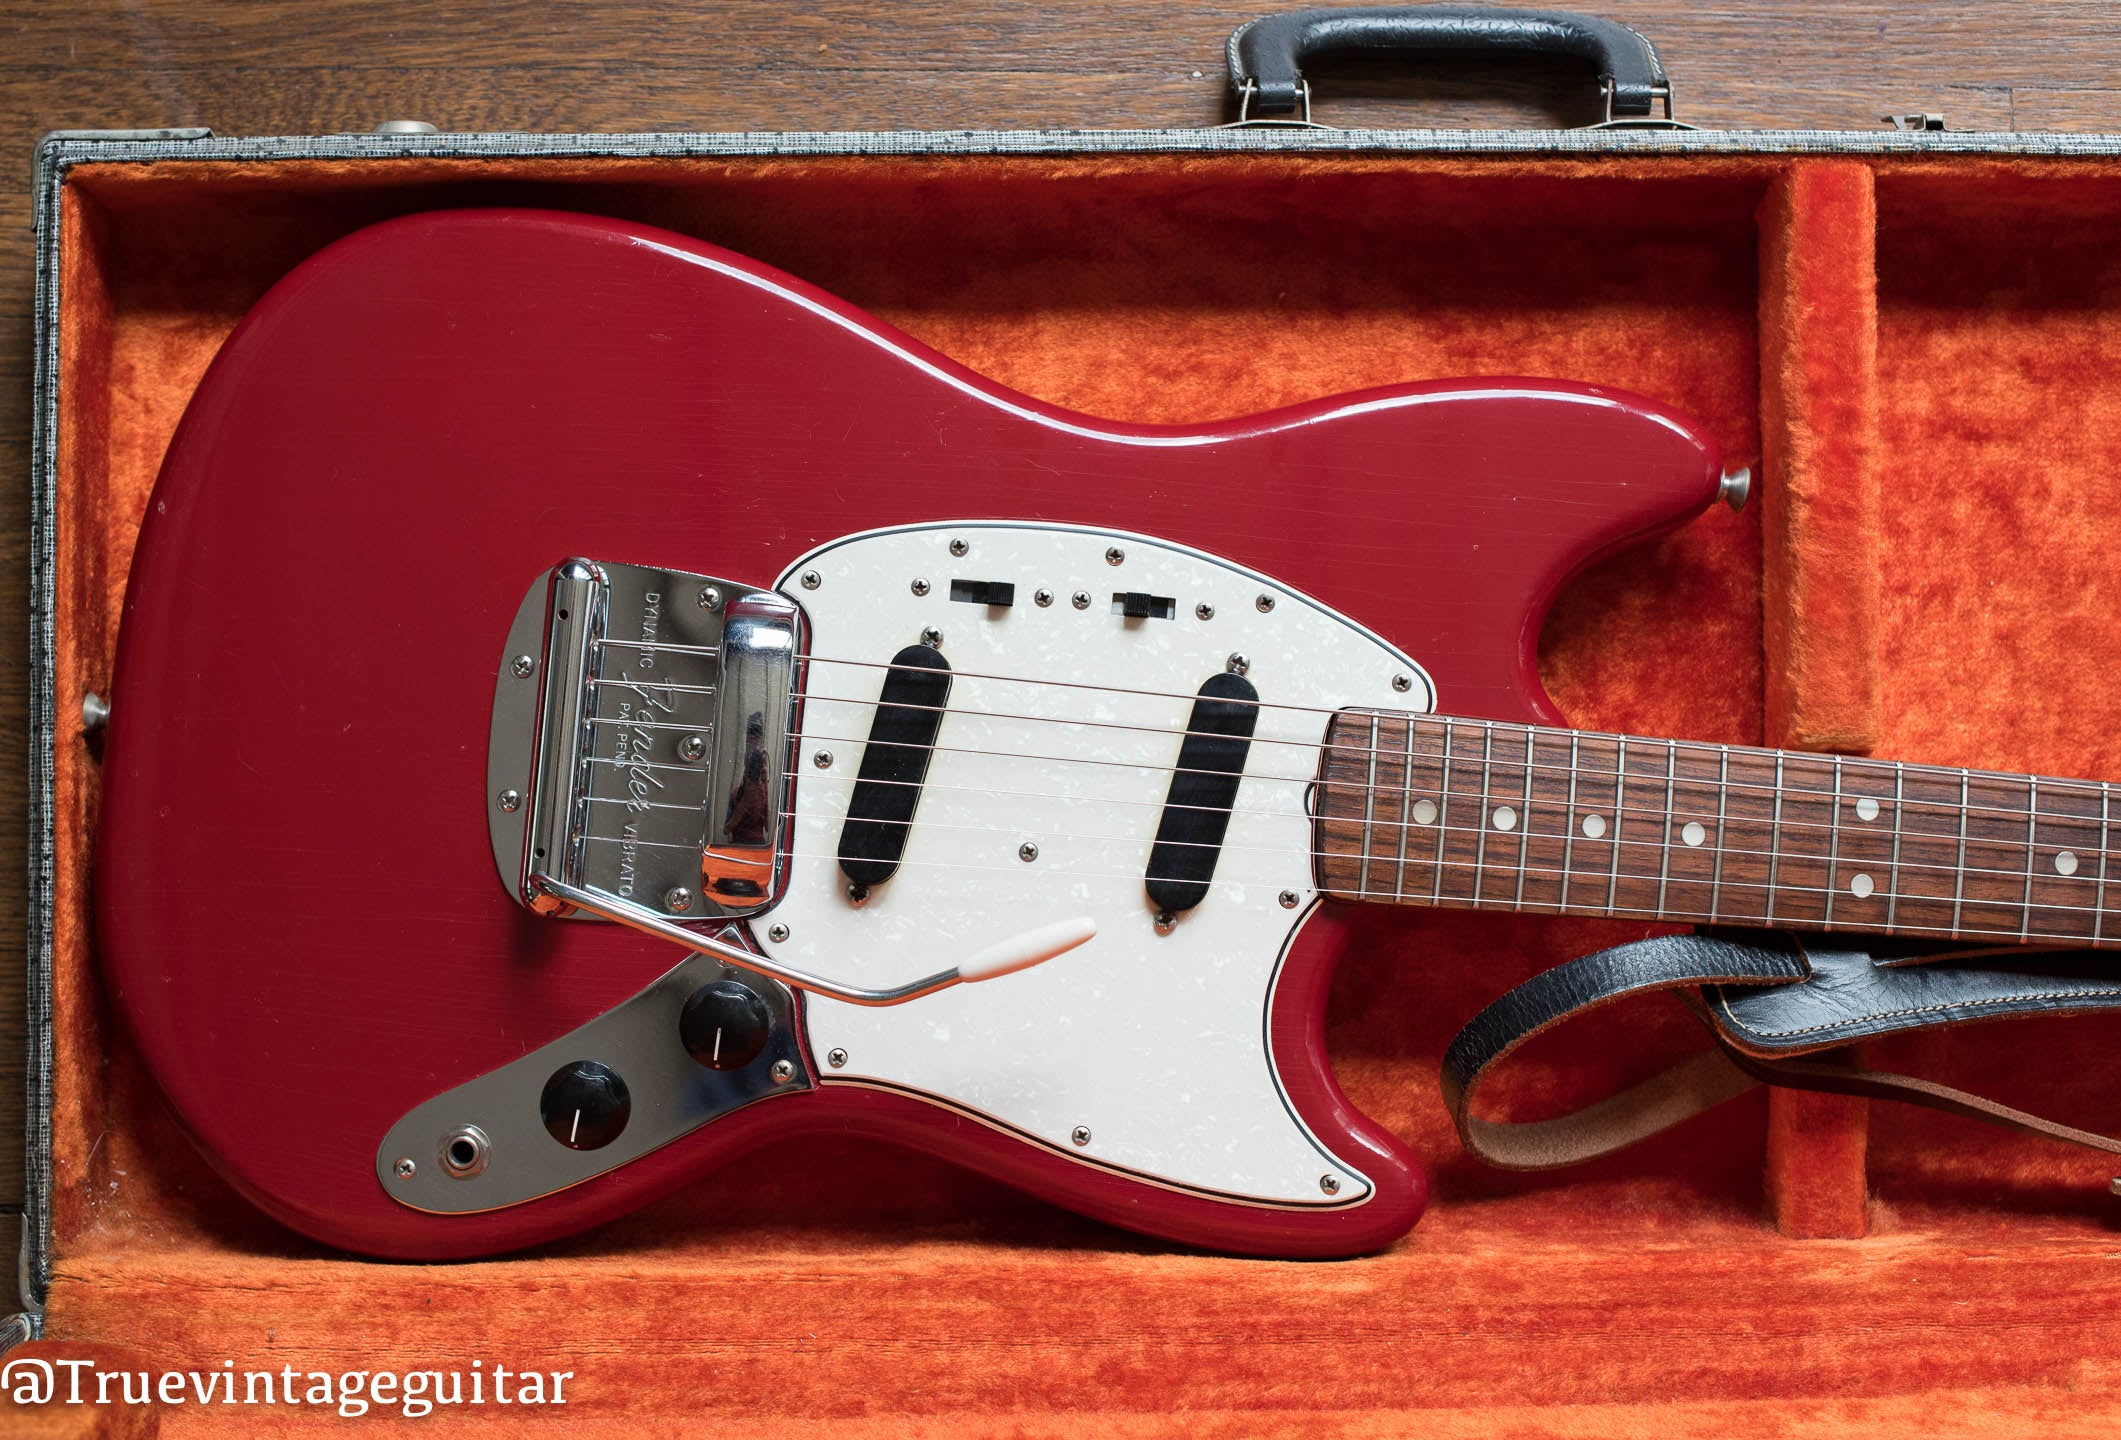 Fender Mustang vintage 1966 Red guitar